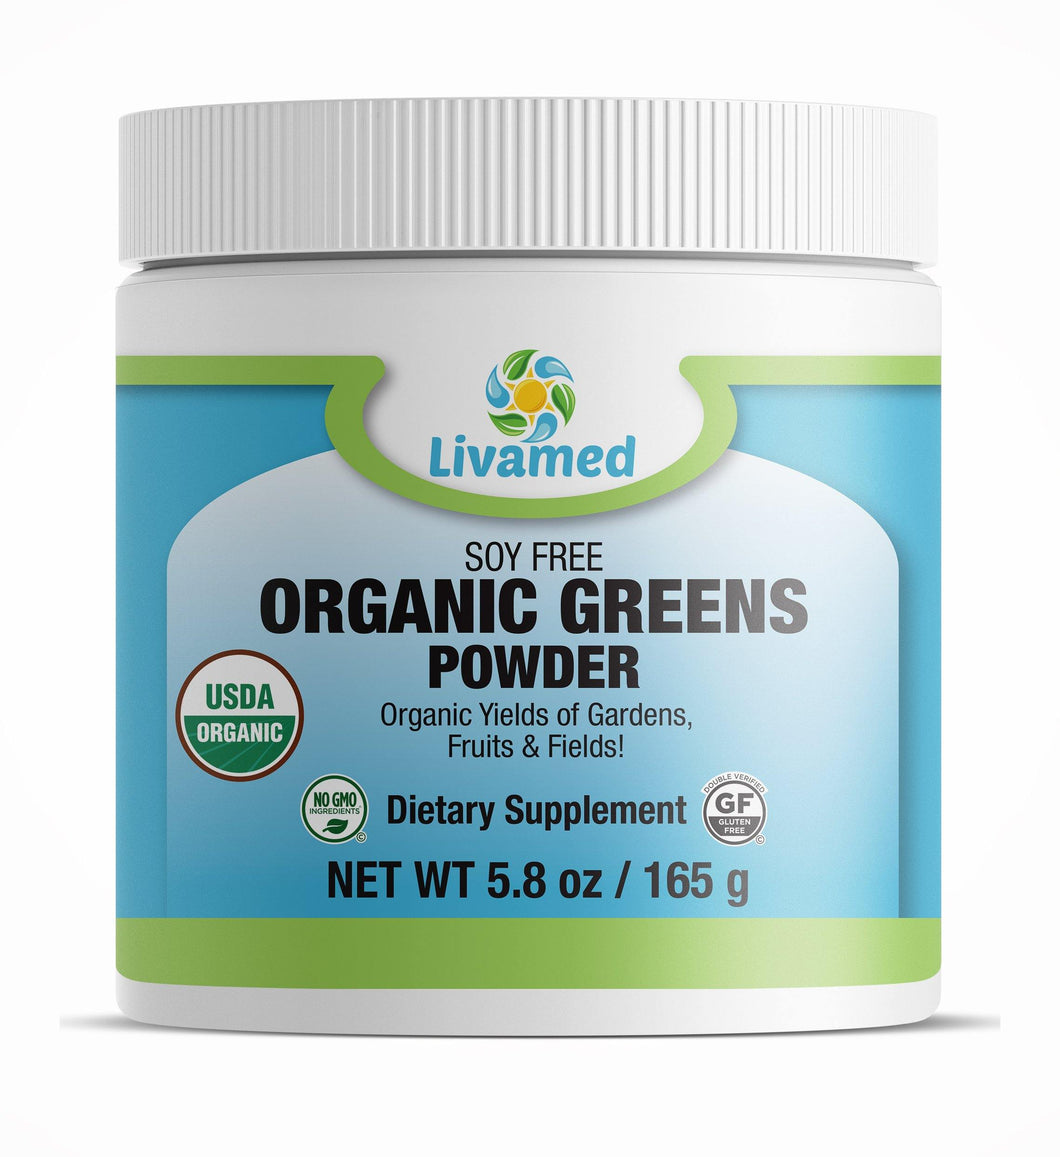 Livamed - Organic Greens Powder Soy Free 5.8 oz Count - Livamed Vitamins